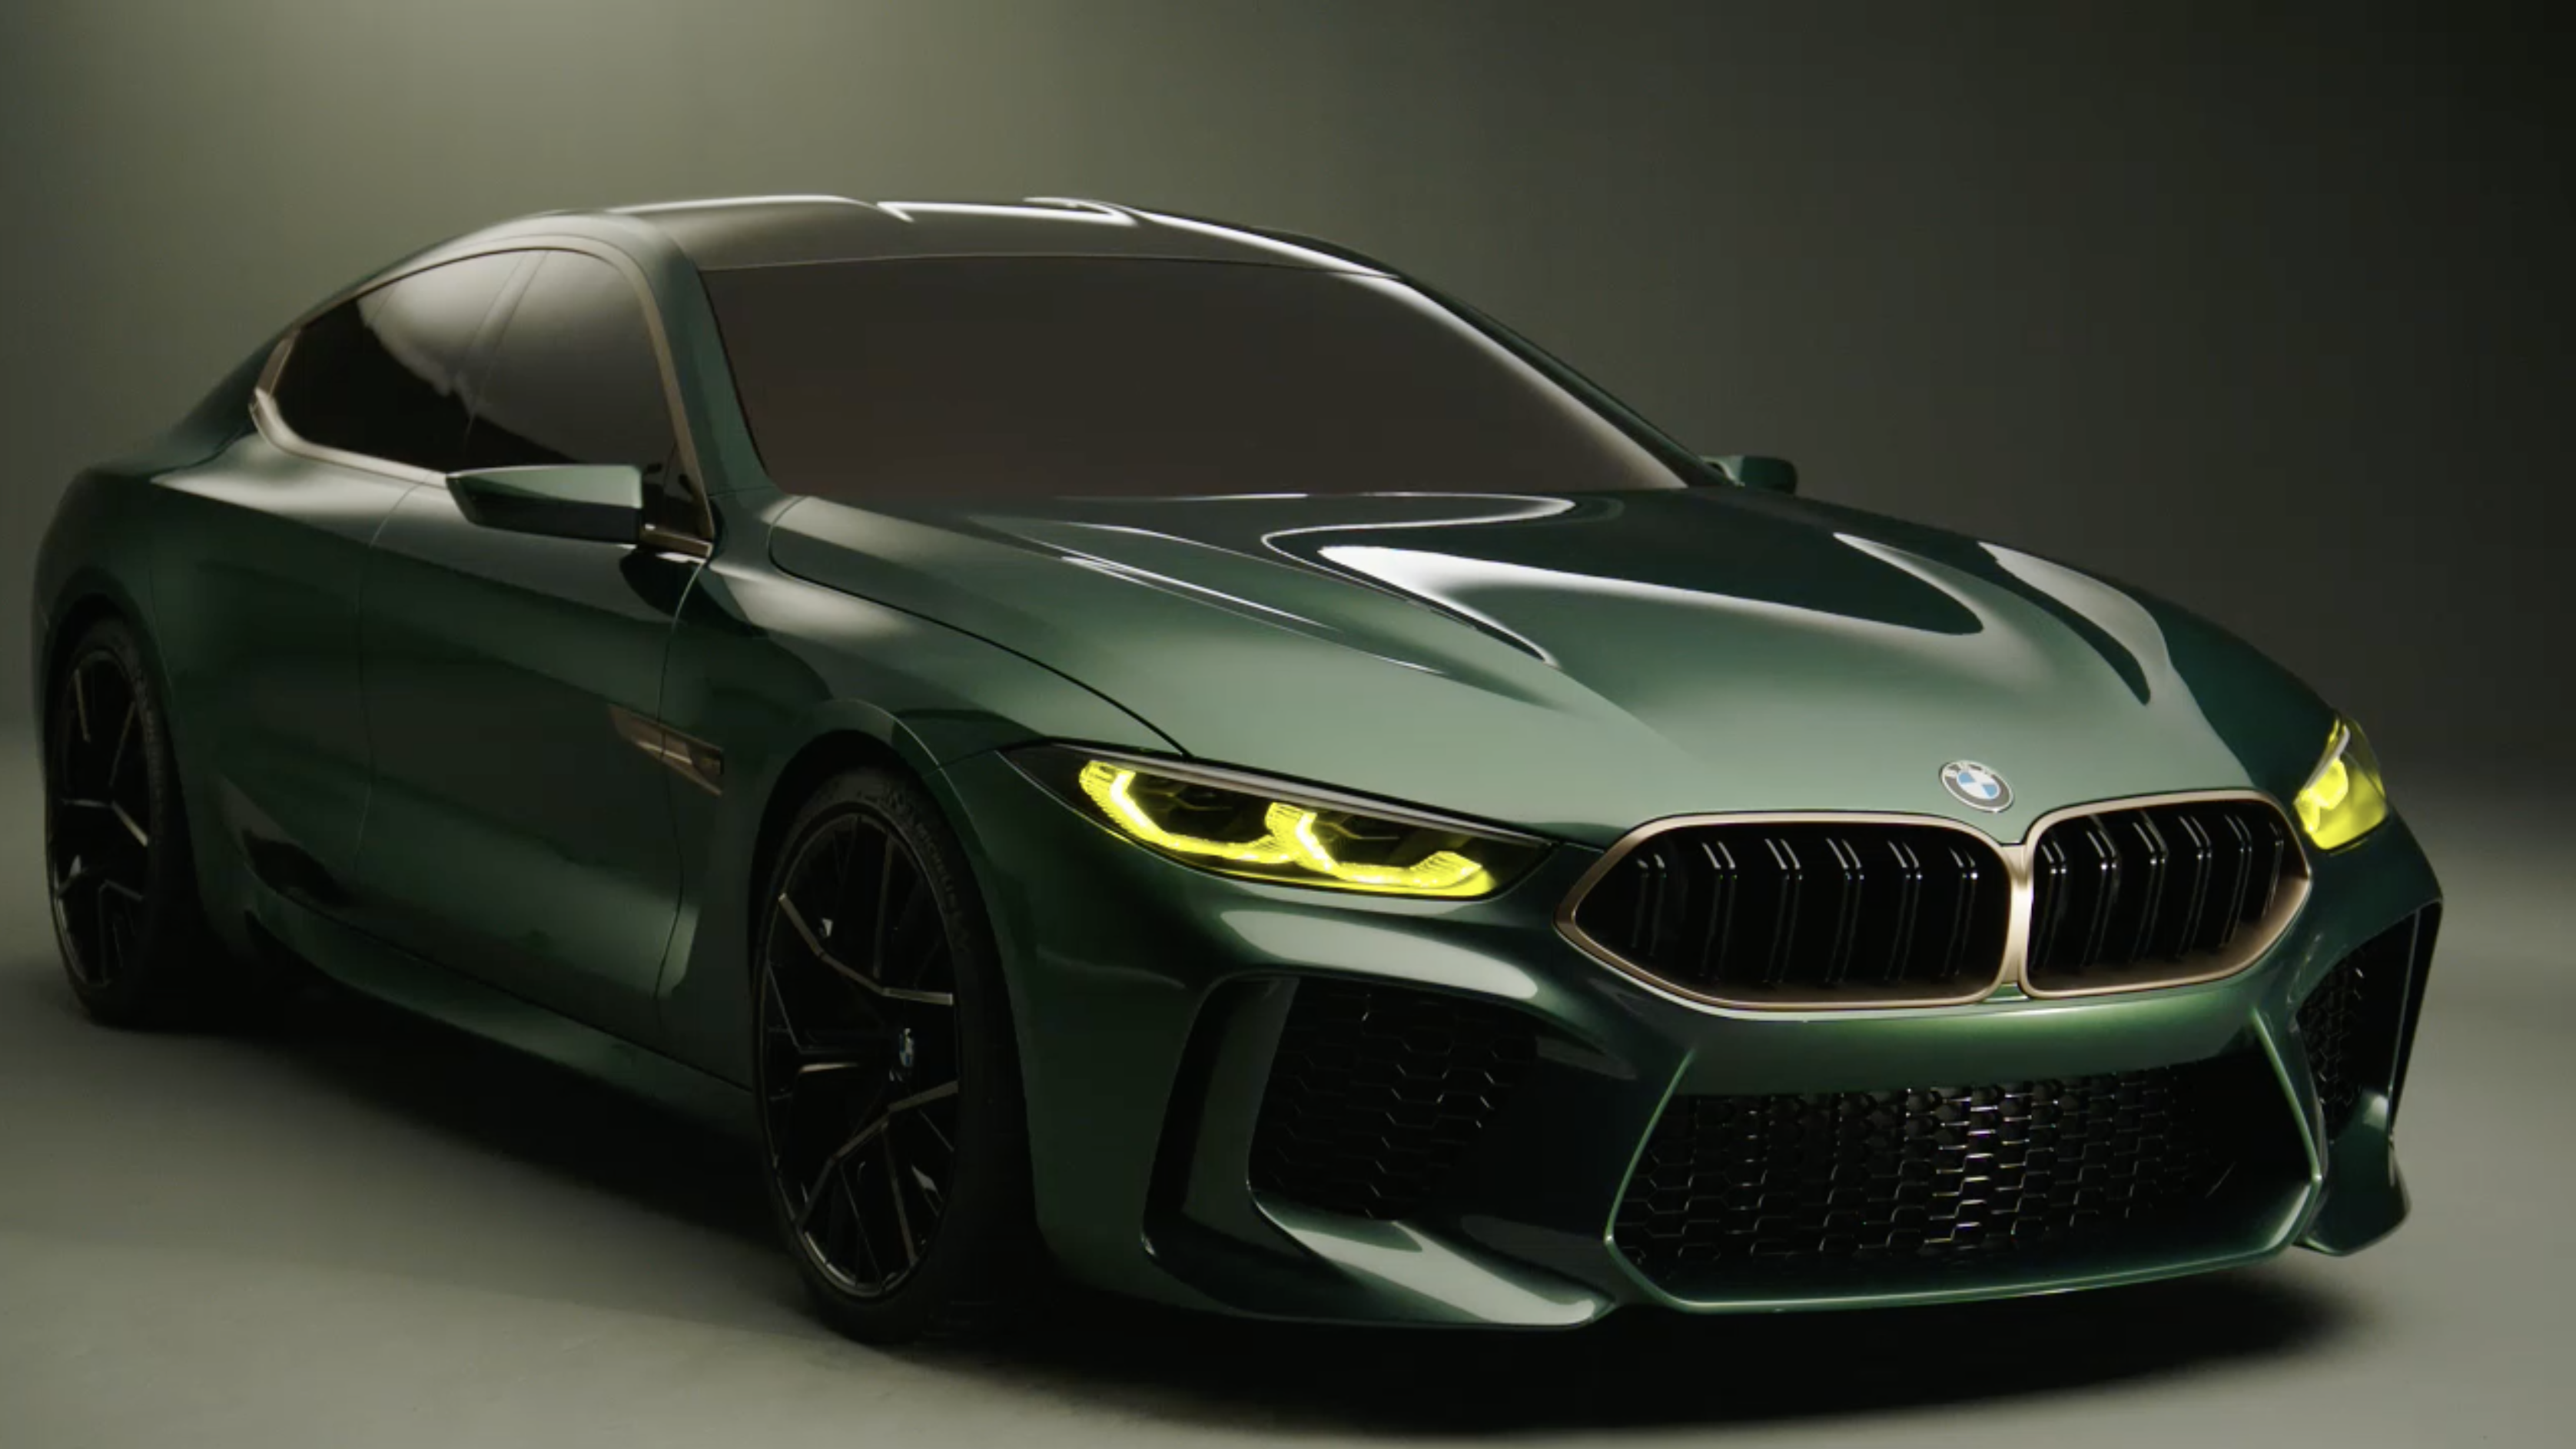 Bmw 3 Series G20 >> Video: The BMW M8 Gran Coupe Concept Details - BimmerFile